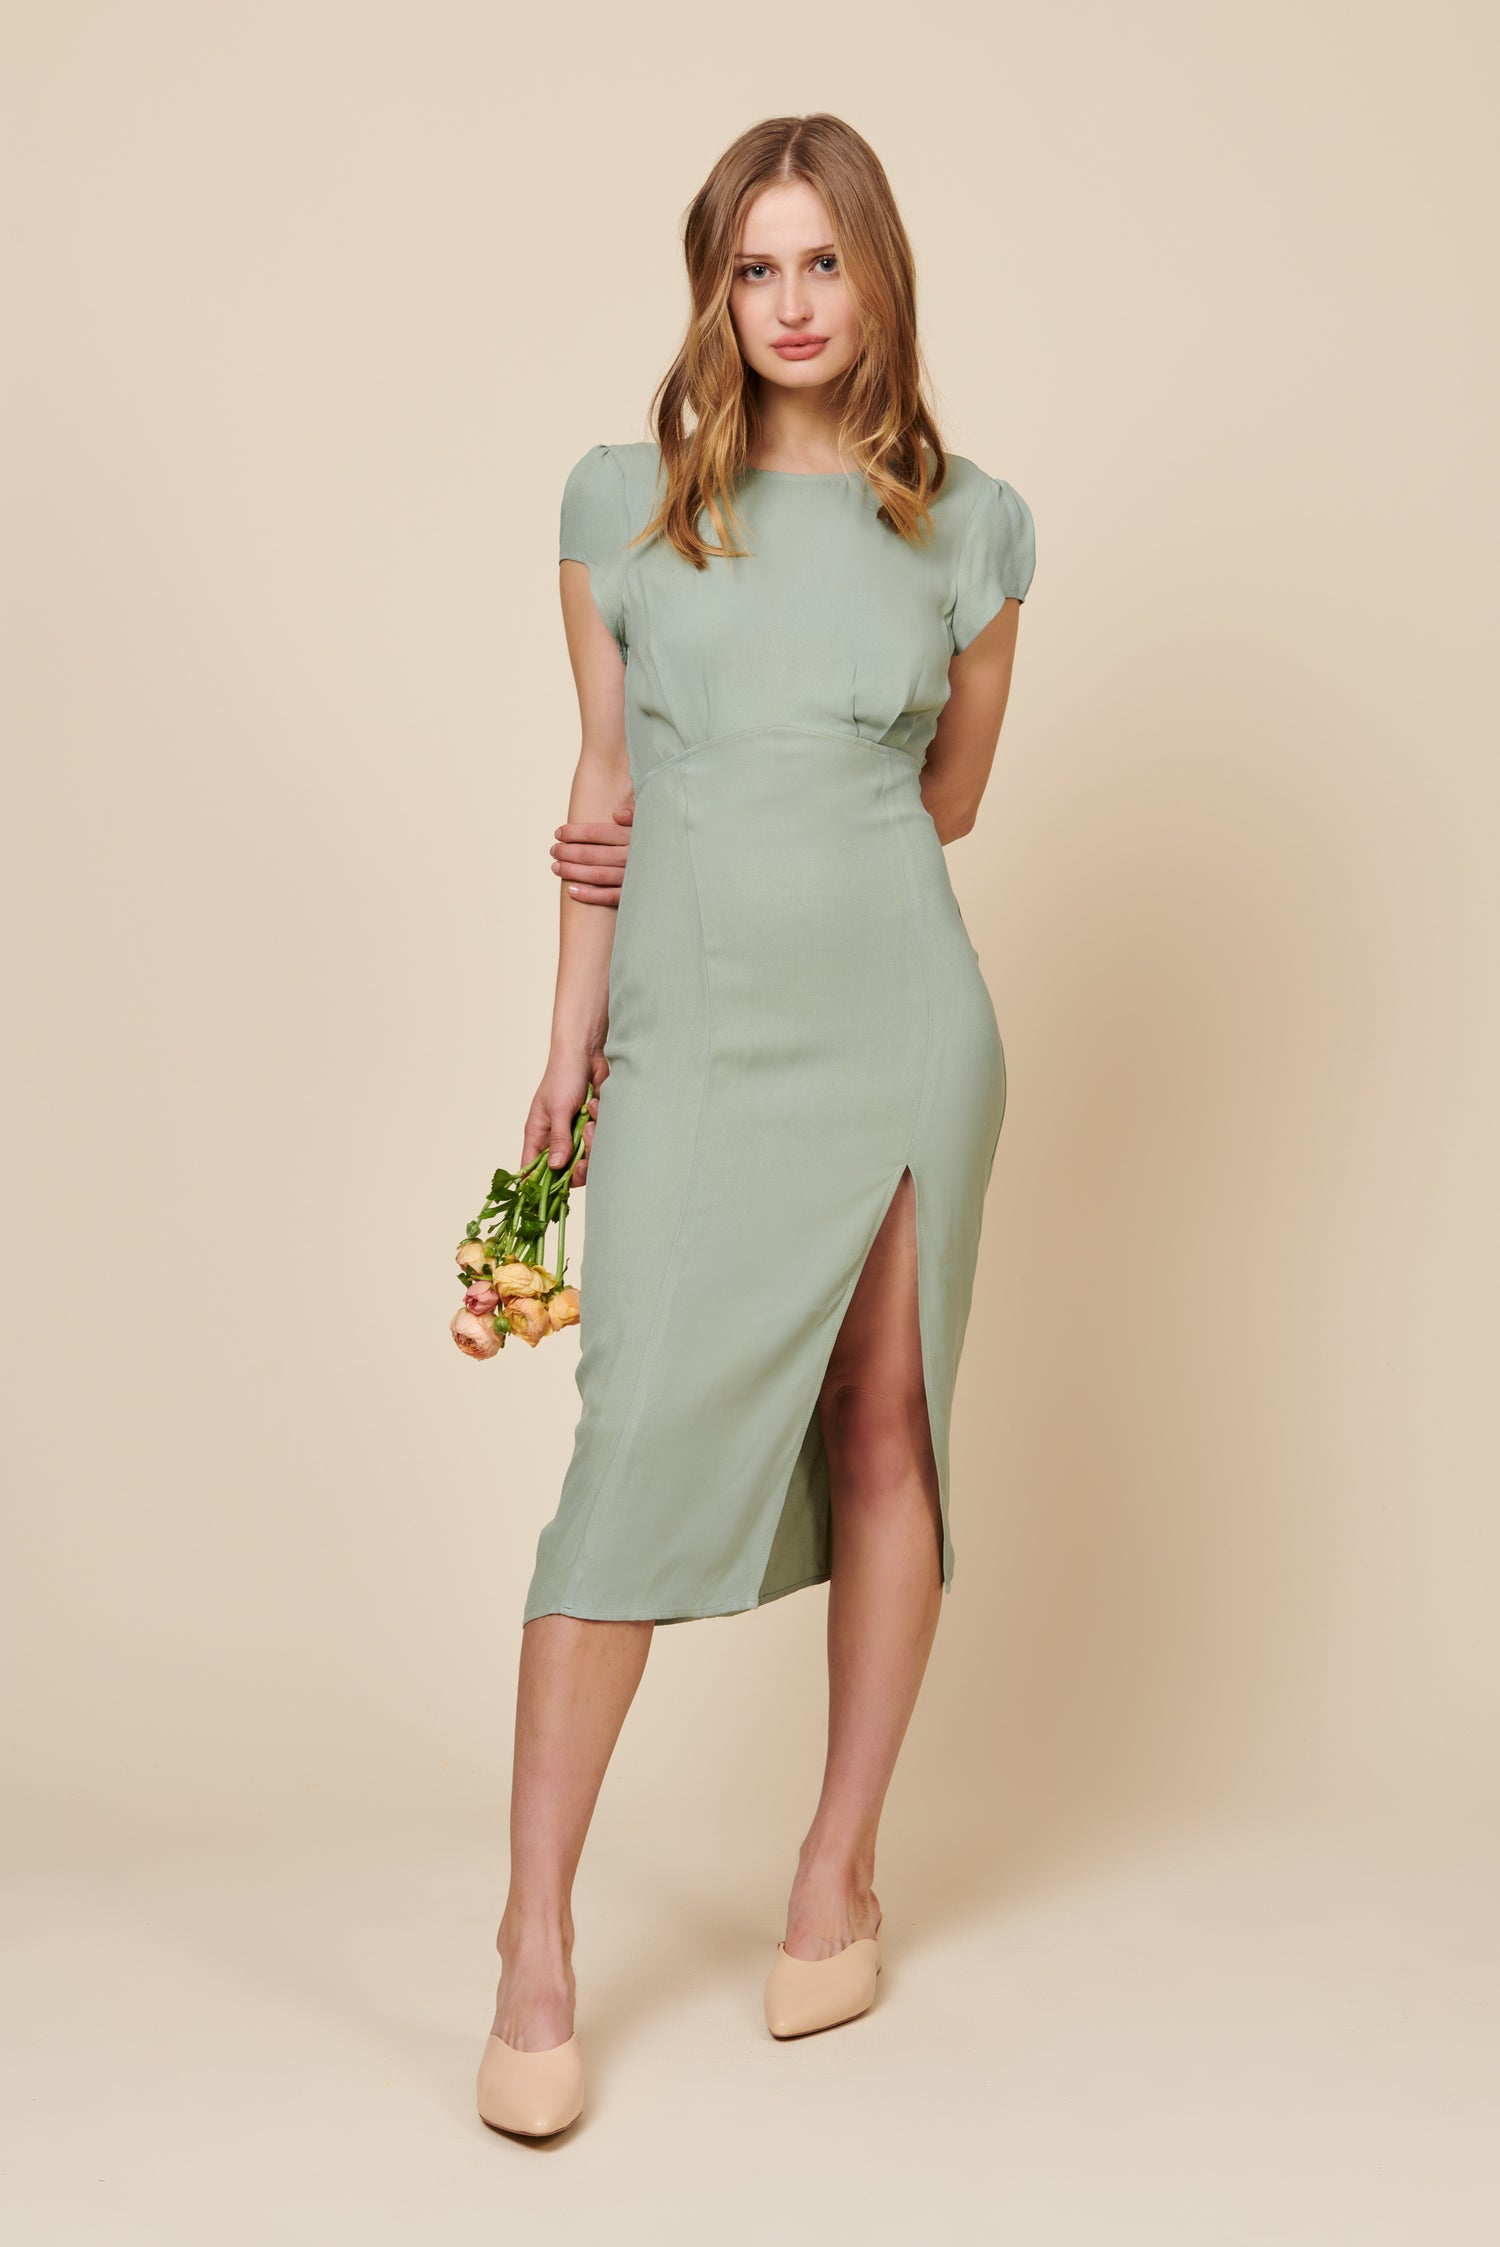 Scarlette Dress in Sage